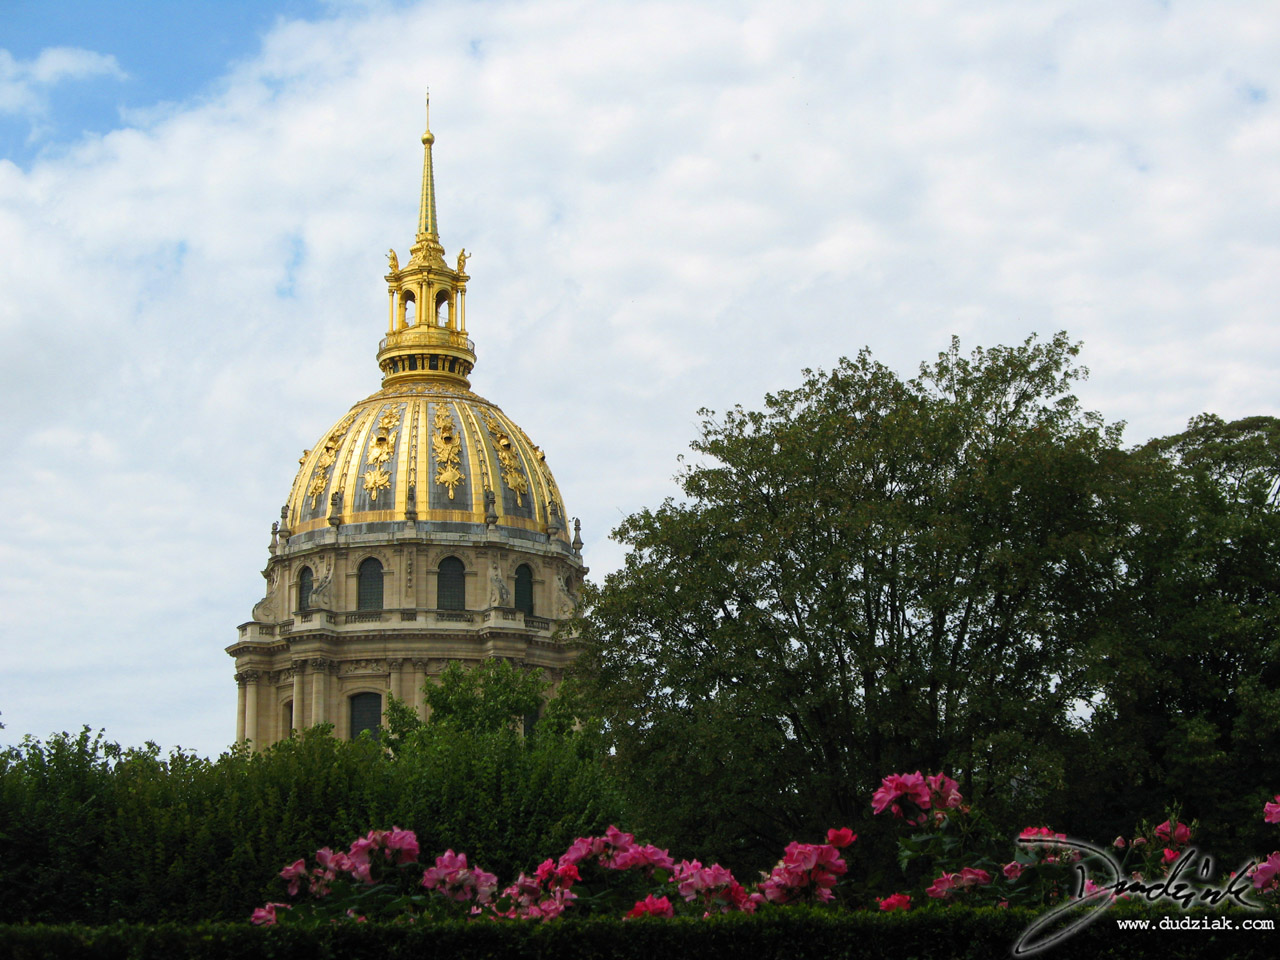 Paris France,  dome,  Les Invalides,  Military Museum,  Les Invalides,  Paris France,  Military Museum